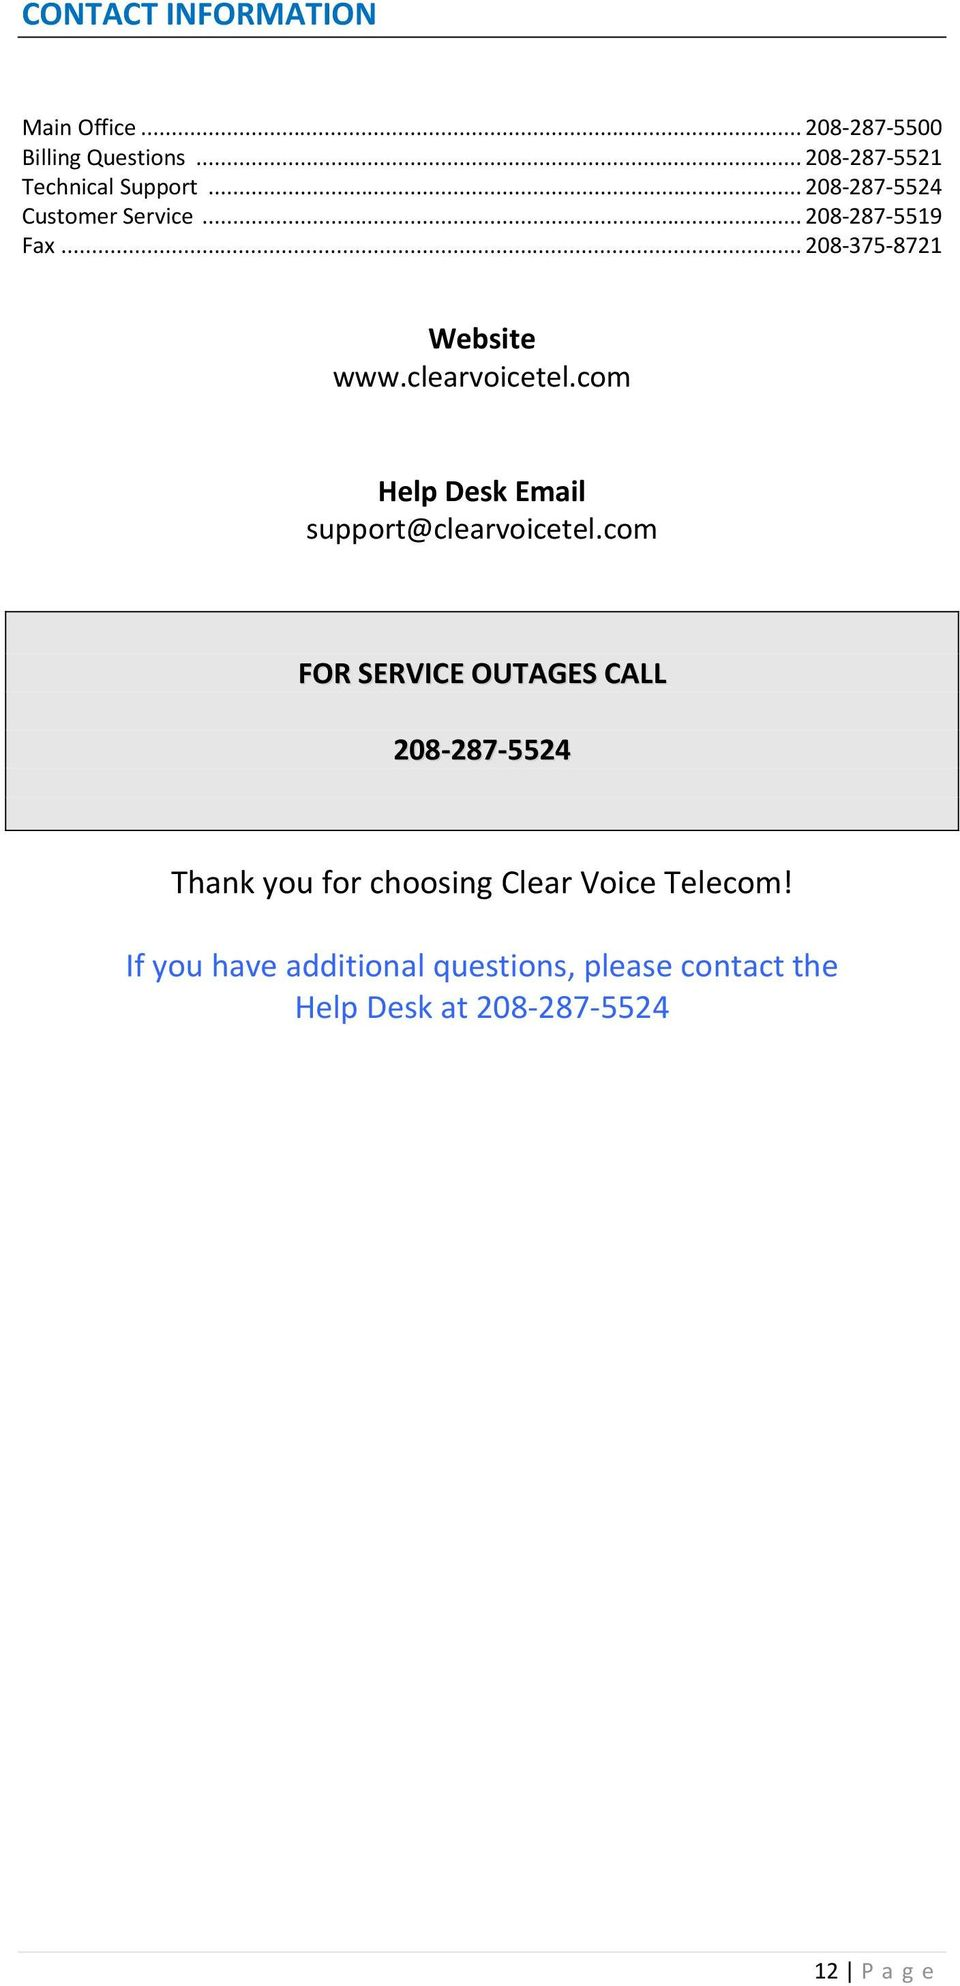 com Help Desk Email support@clearvoicetel.